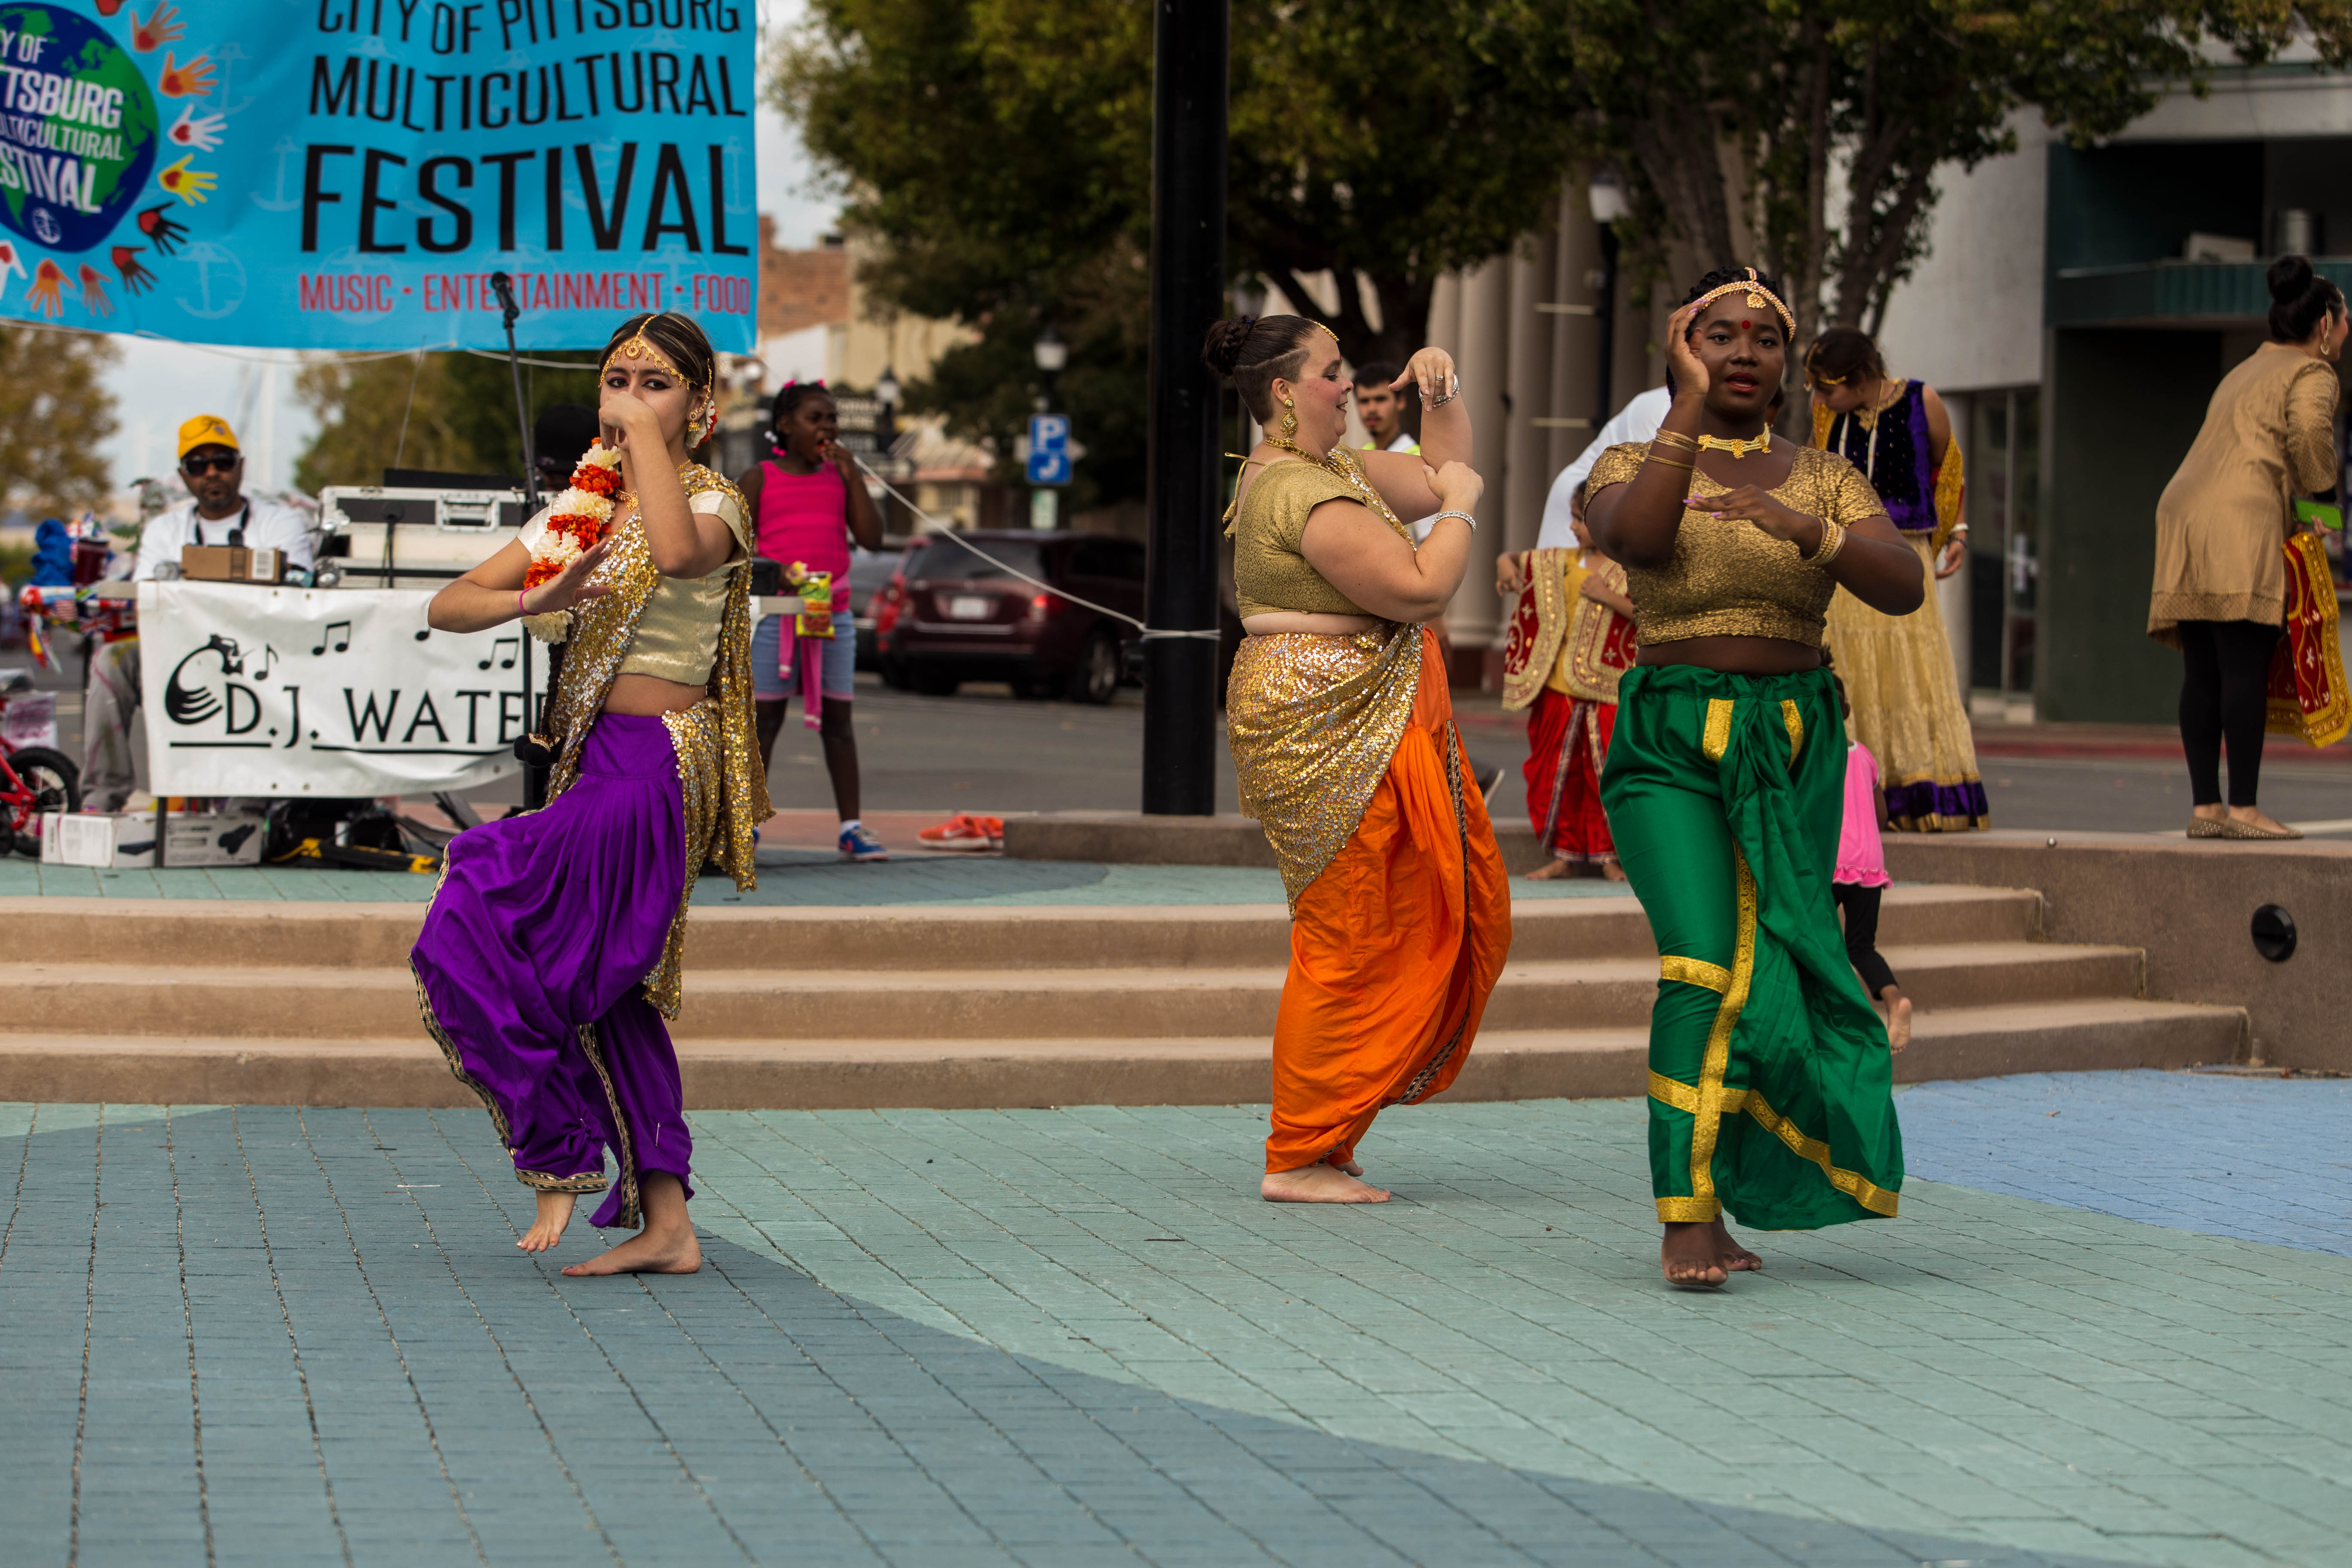 CITY_PITTSBURG_MULTICULTURAL_OCTOBER_2016 (694)